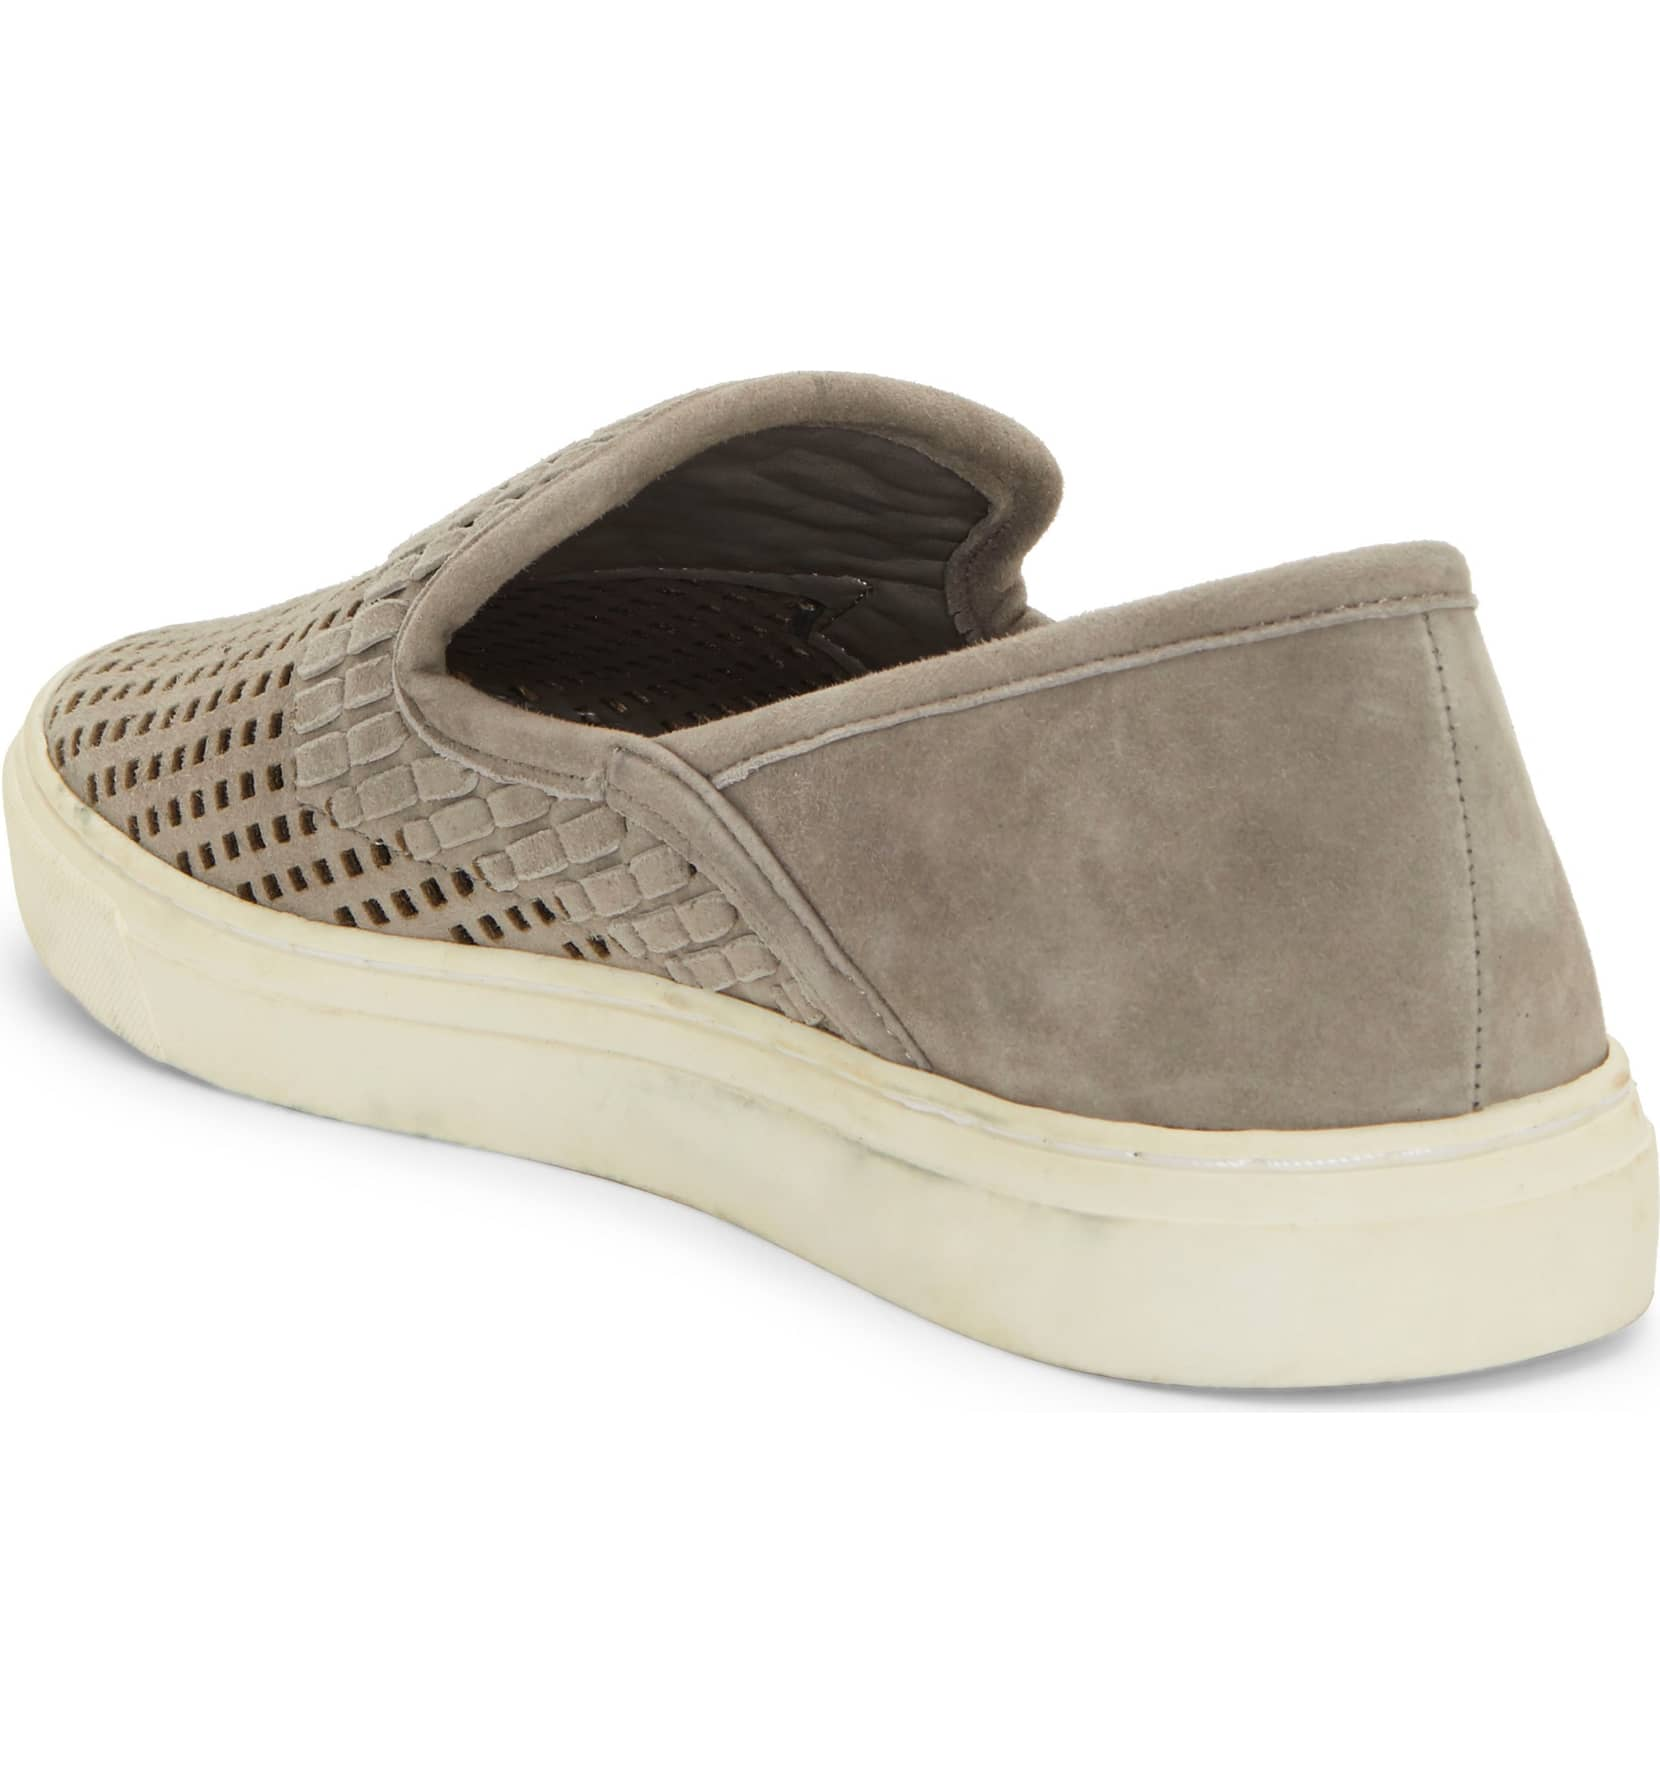 Vince-Camuto-Bristie-Storm-Grey-Leather-Woven-White-Sole-Slip-On-Sneakers thumbnail 47